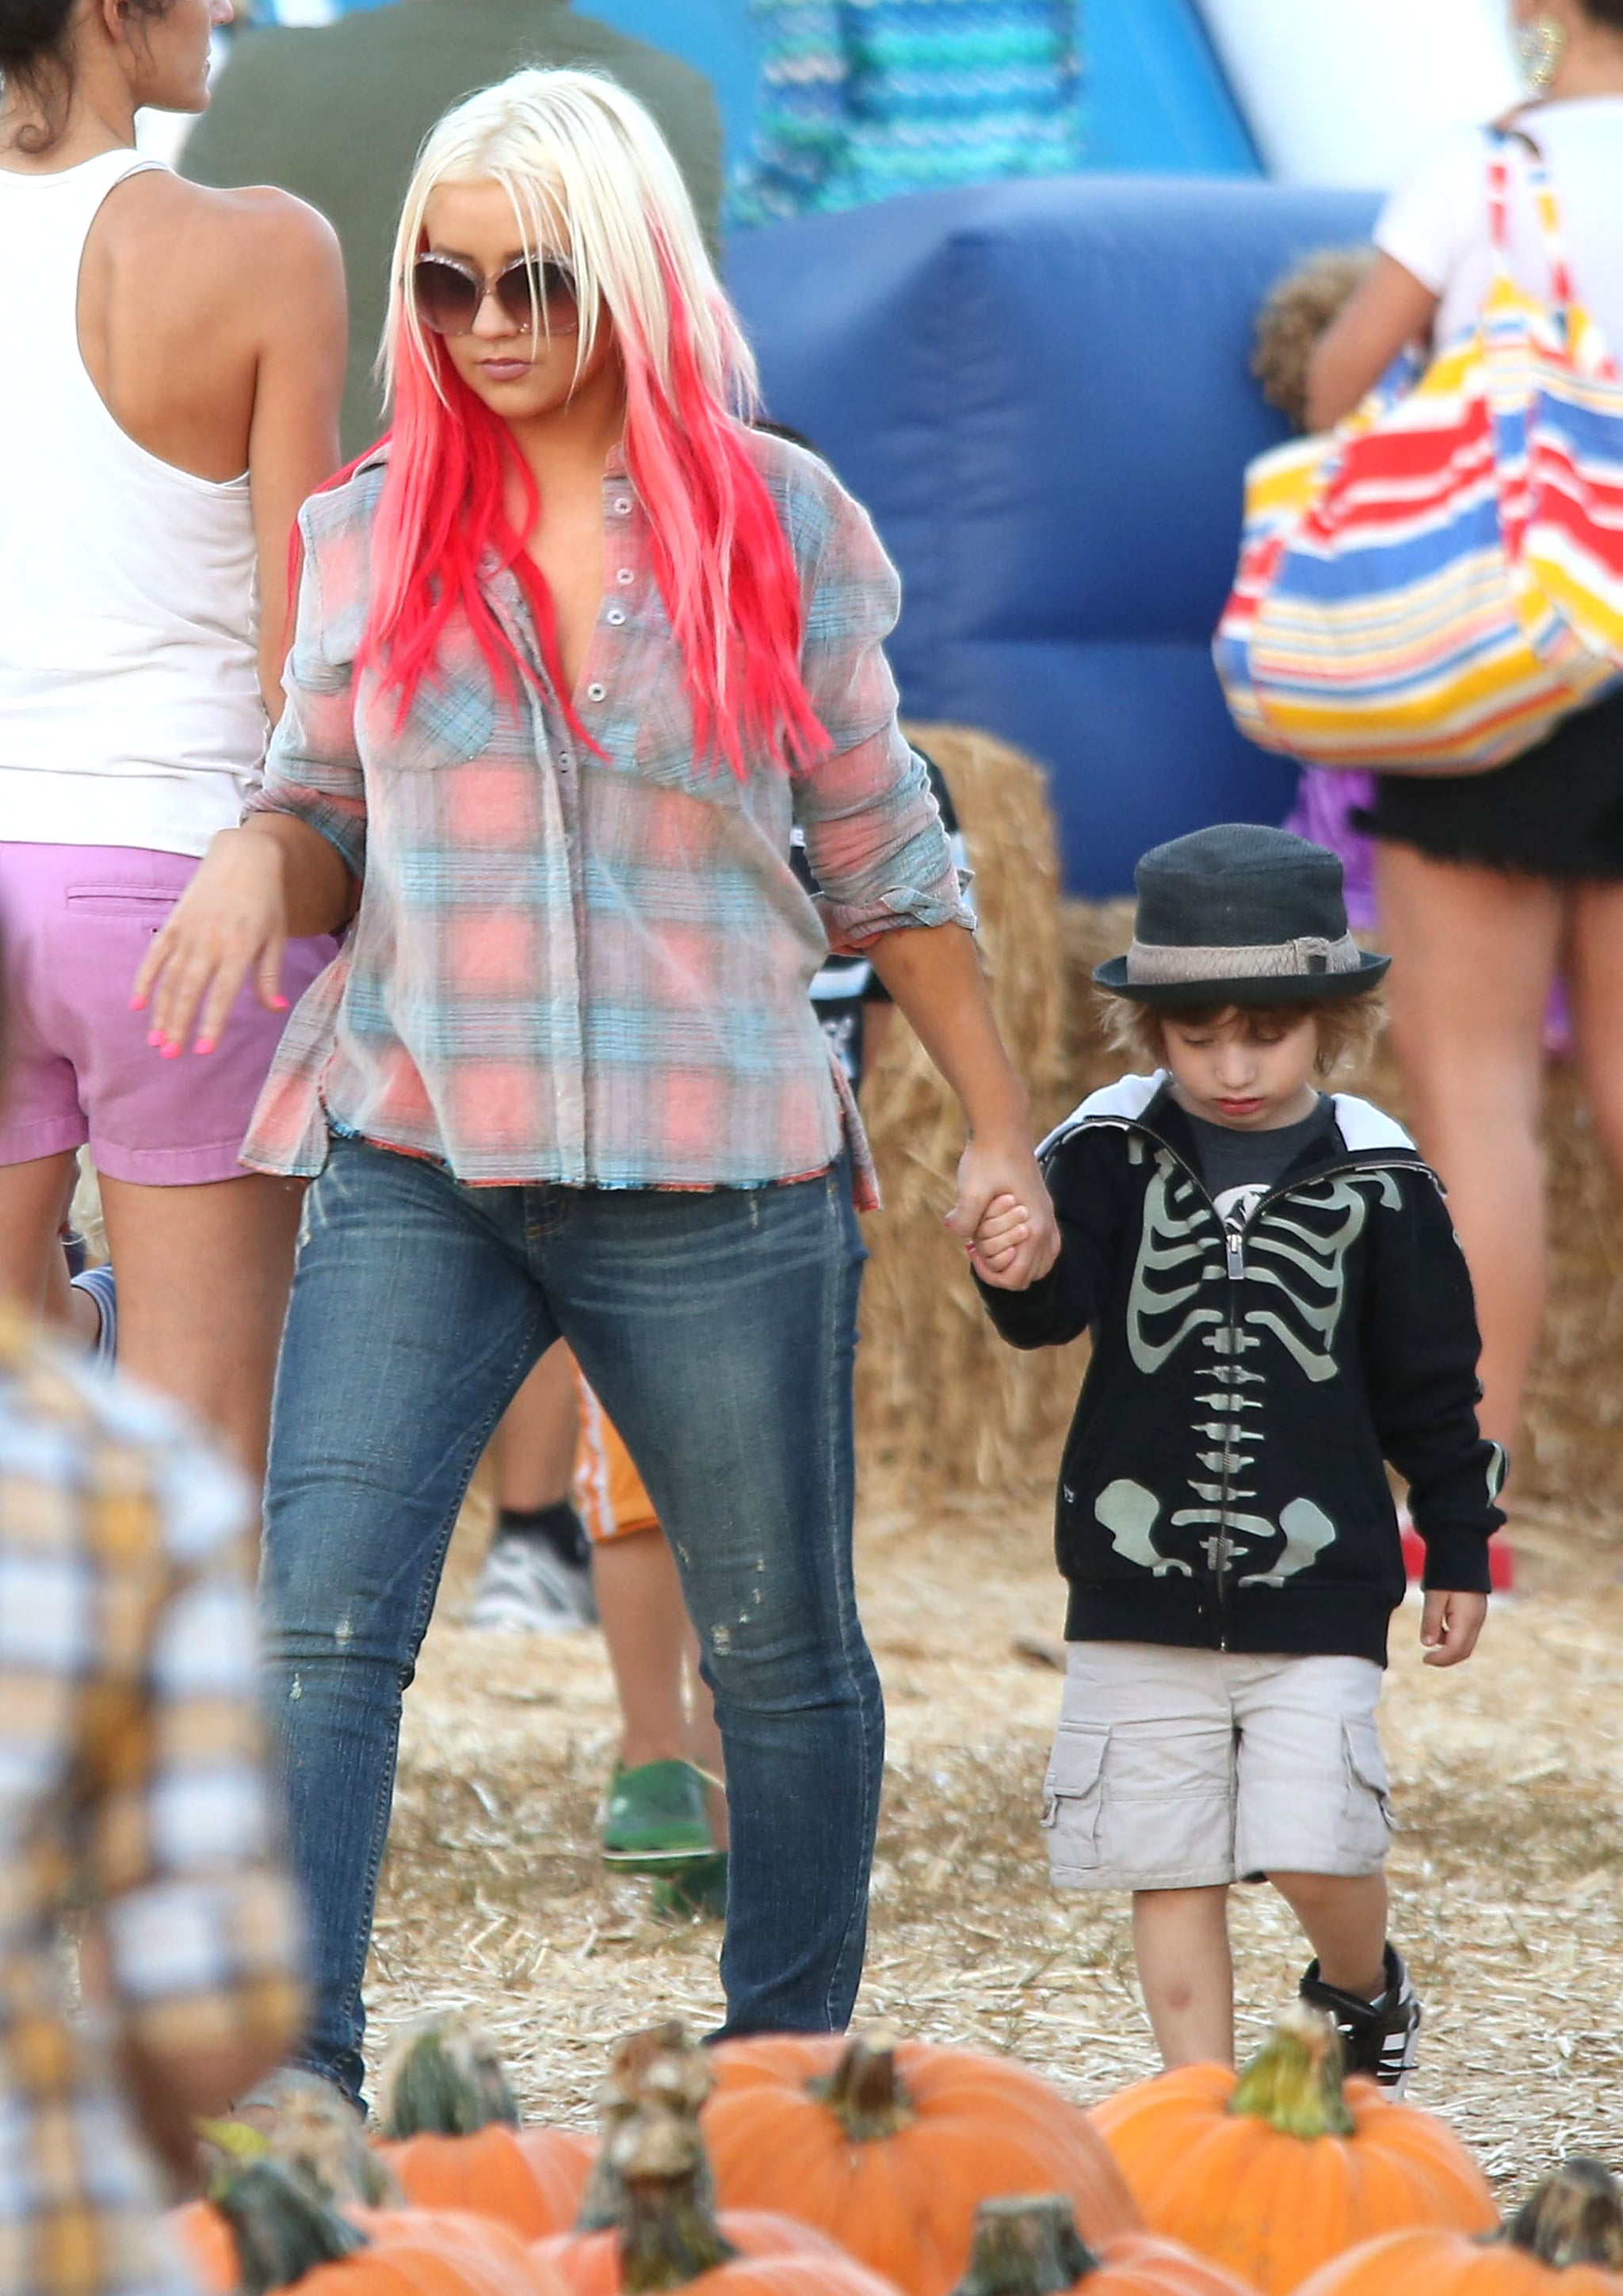 Christina Aguilera and her son, Max, held hands while they scoured the pumpkins at Mr. Bones Pumpkin Patch in LA.